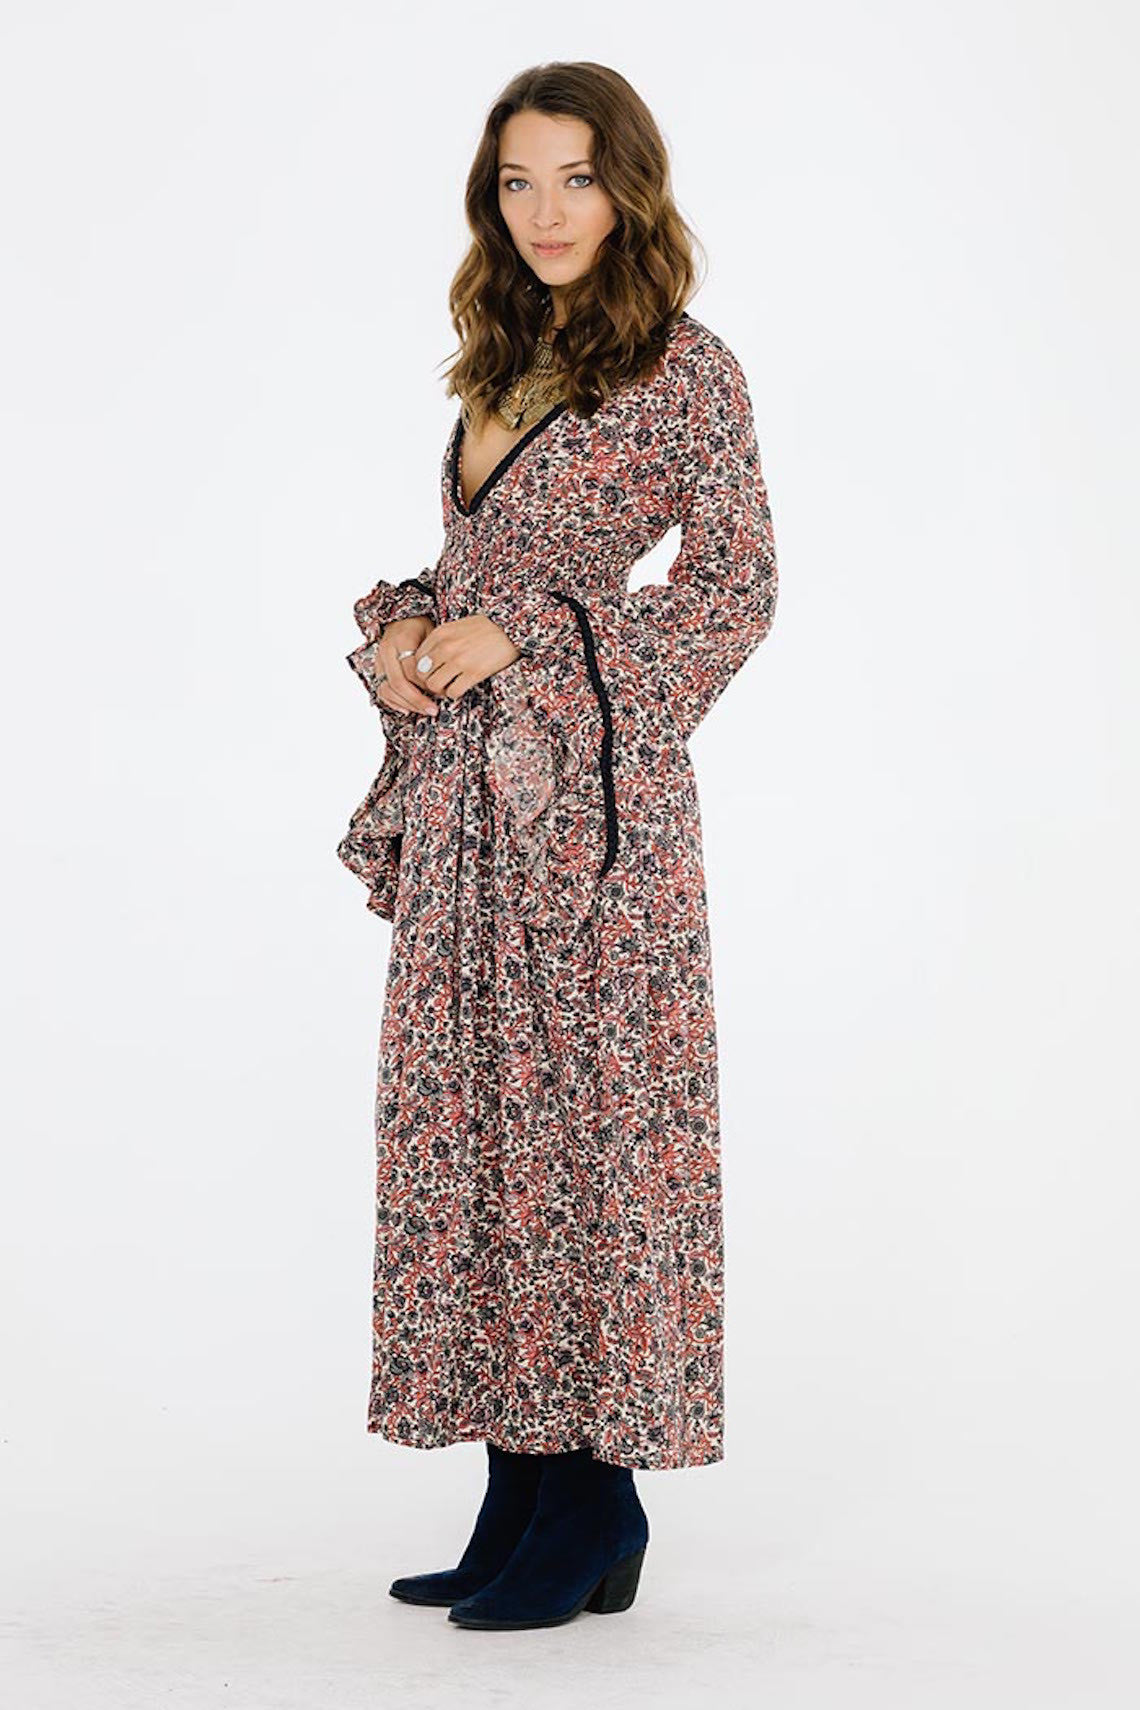 Granada Maxi Dress-Women's Fashion - Women's Clothing - Dress-Product Details This piece is 100% Polyester Cinched waistline, plunging neckline Bell sleeves with drape trim; Unlined Model is wearing a size Small Hand wash cold, lay flat to dry Easy Measure Conversion XS/0 S/1 M/2 L/3 US 0/2 2/4 6/8 8/10 AUS 4/6 6/8 10/12 12/14 BRAZIL 34/36 36/38 40/42 42/44 CHINA 76a/80a 80a/84a 88a/92a 92a/95a EUP 32/34 34/36 38/40 40/42 JAP 5/7 7/9 11/13 13/15 RUS 42 42/44 46/48 50/52 UK 4/6 6/8 10/12 12/14 De